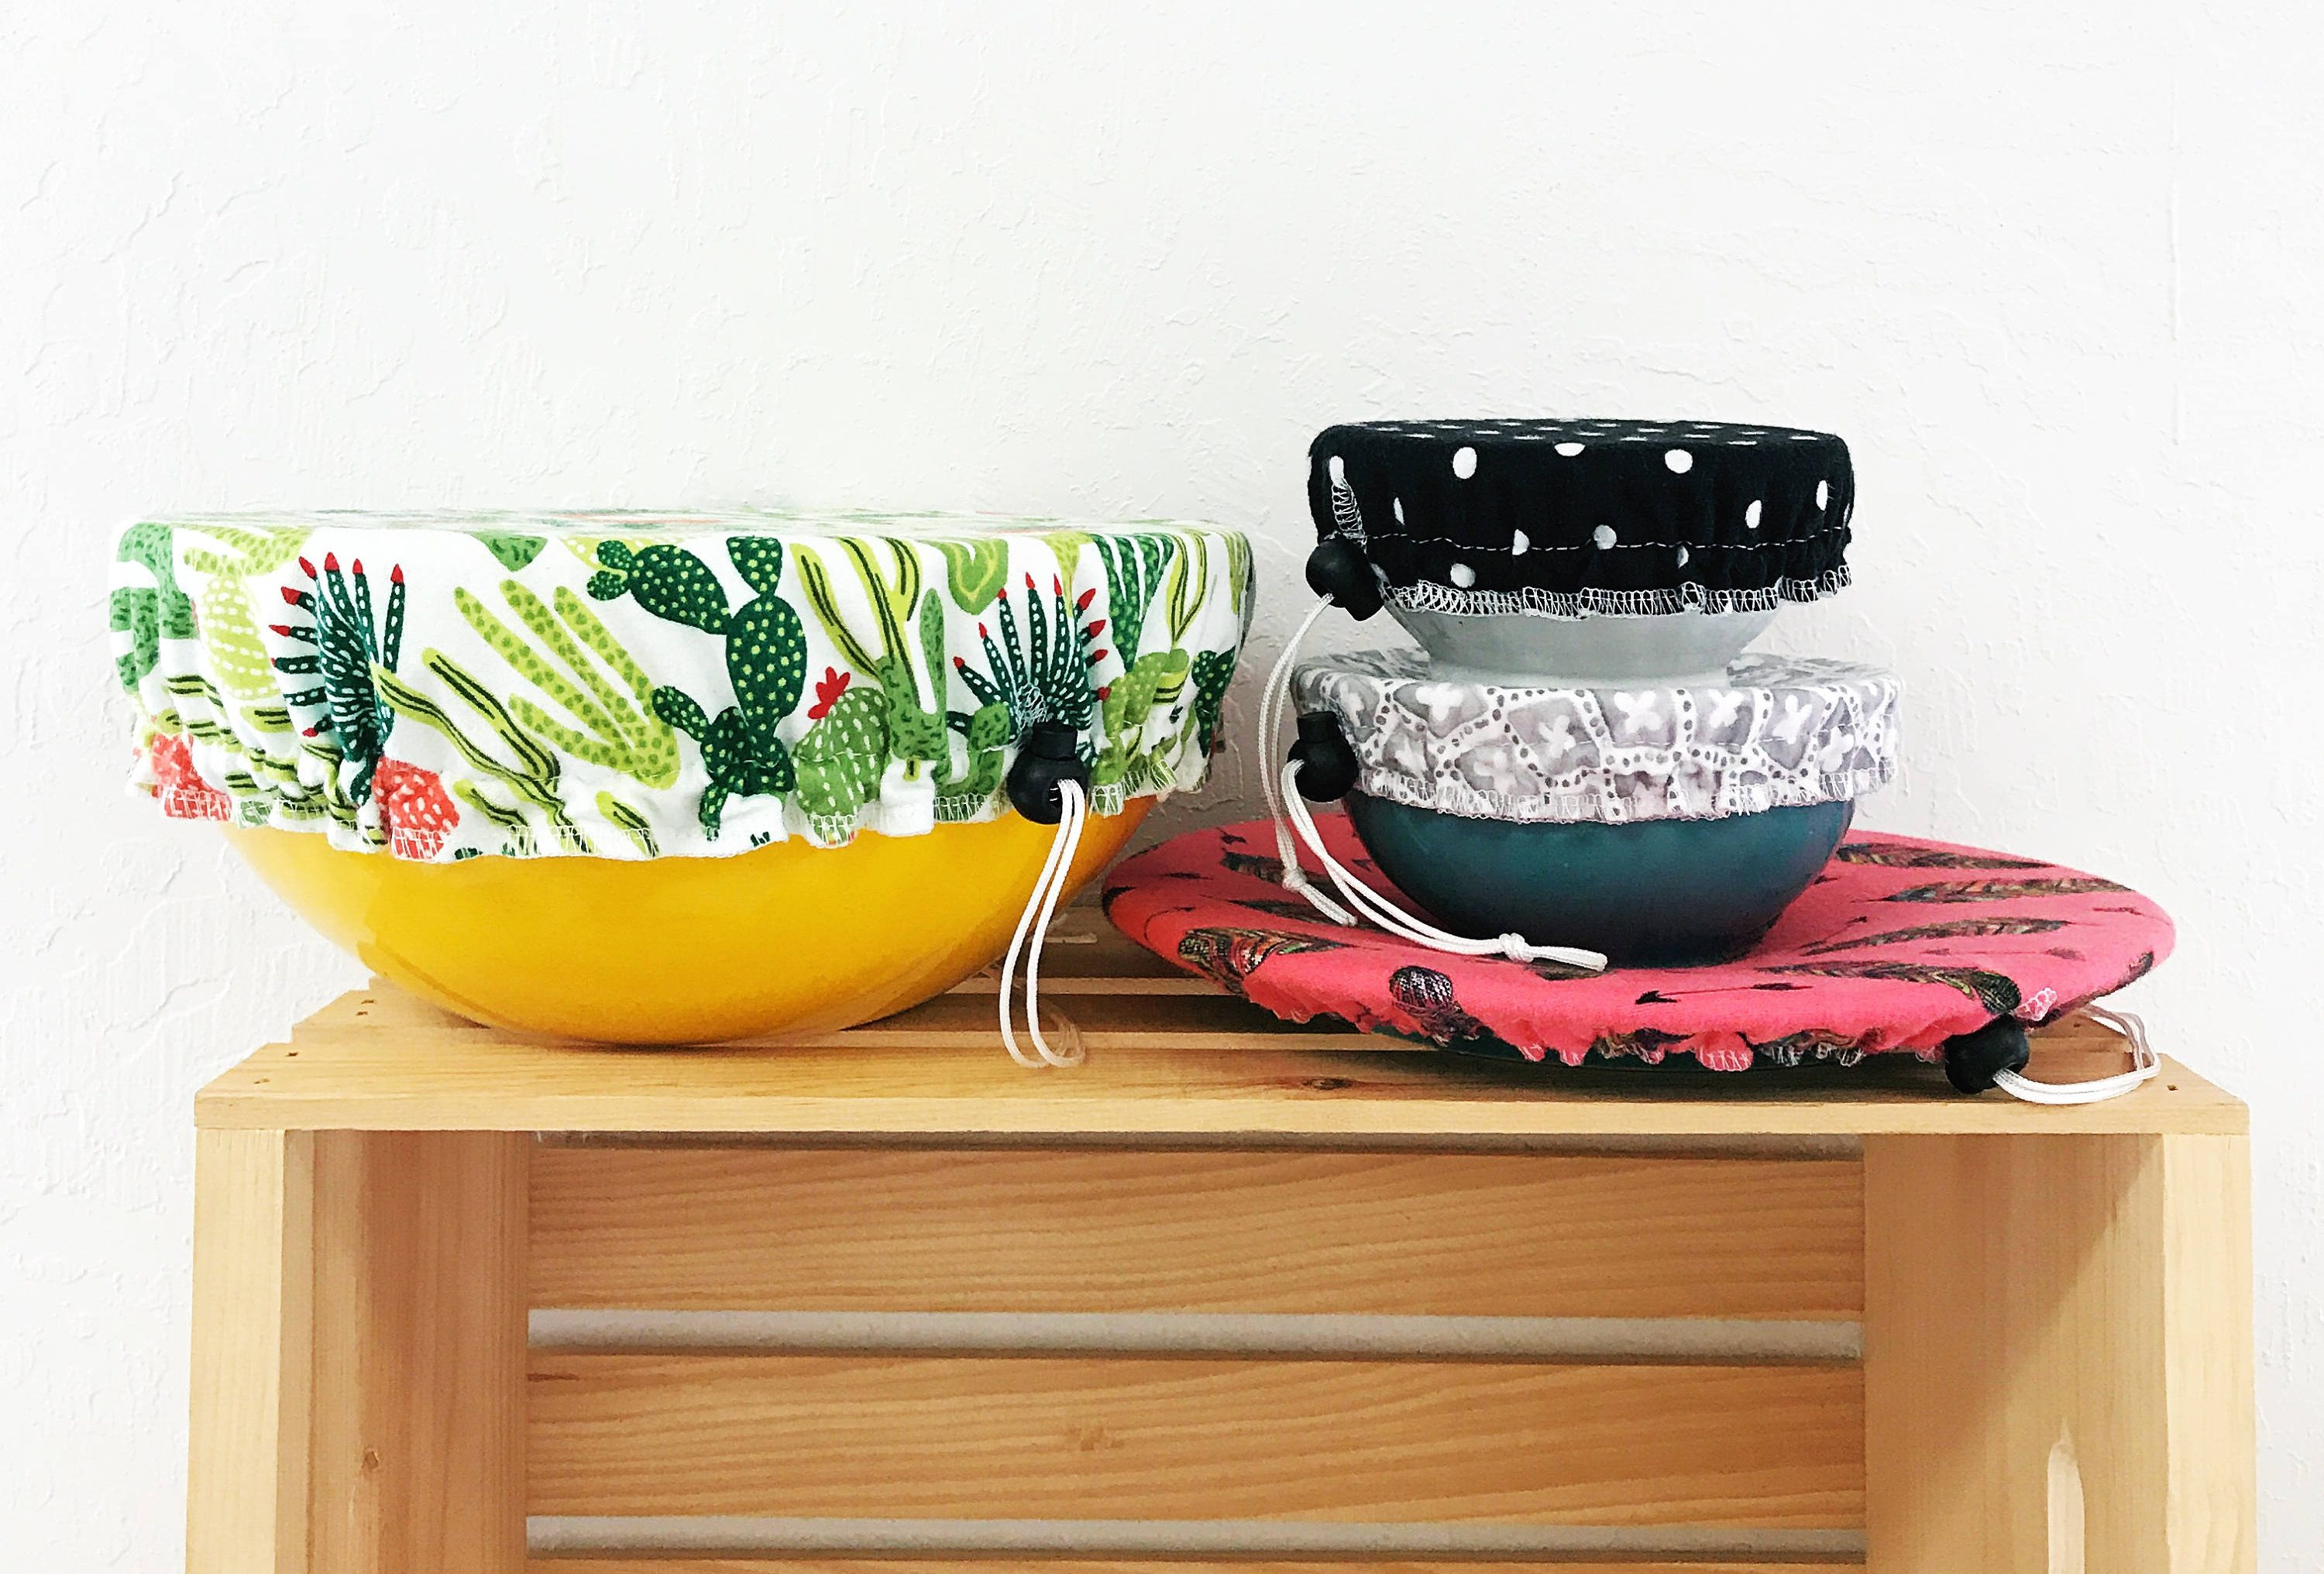 An image of cloth bowl covers for your next potluck. Why not bring a few extra as an eco-friendly gift for your host?